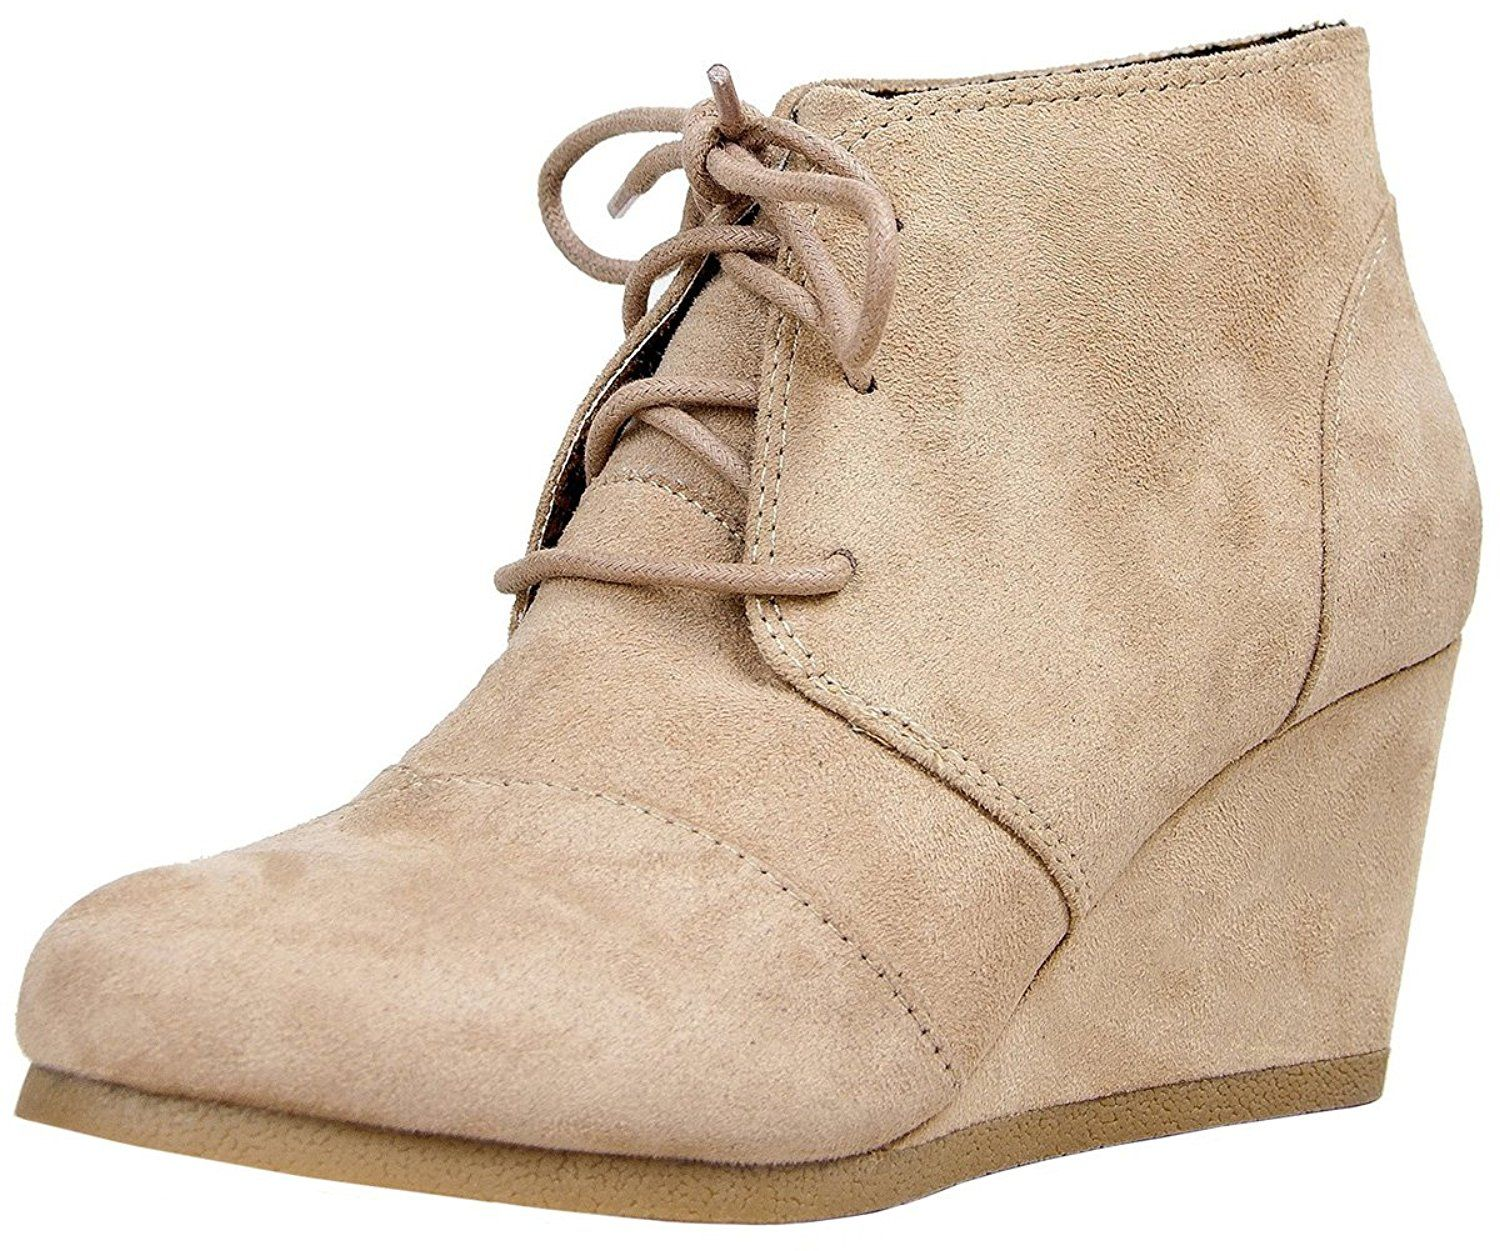 2805b5d1cfd0 Qupid Women s Lace Up Faux Suede Ankle Wedge Booties. 10 Best Black Suede  Boots And Booties. All Boot Wedges. Compare prices on Boot Wedges from top  online ...